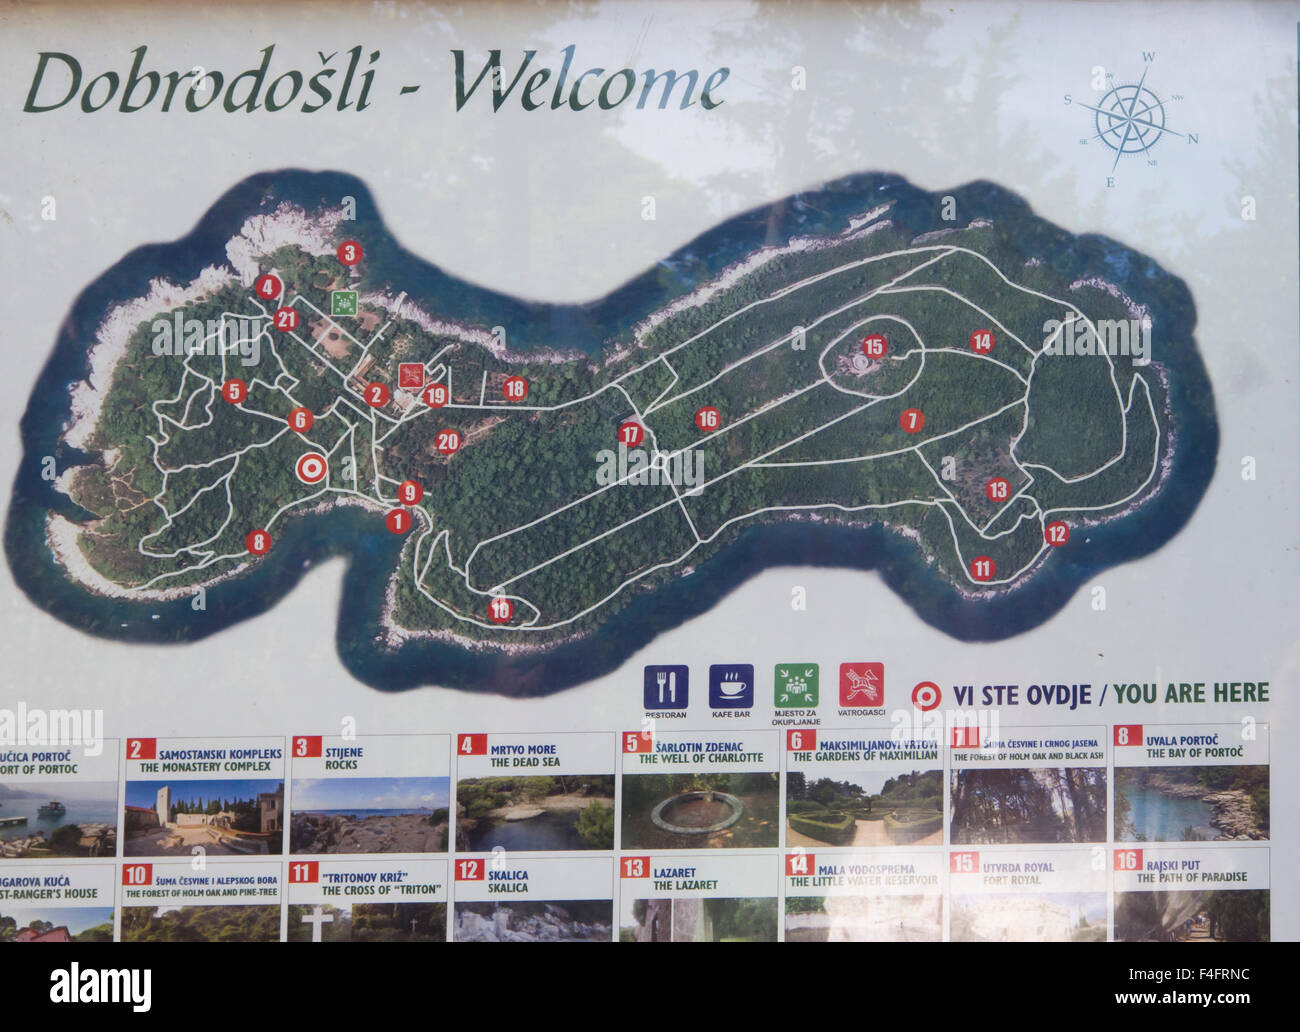 Map of Lokrum island, 15. min. from the old town in Dubrovnik Croatia by boat, a green oasis with footpaths, cliffs - Stock Image